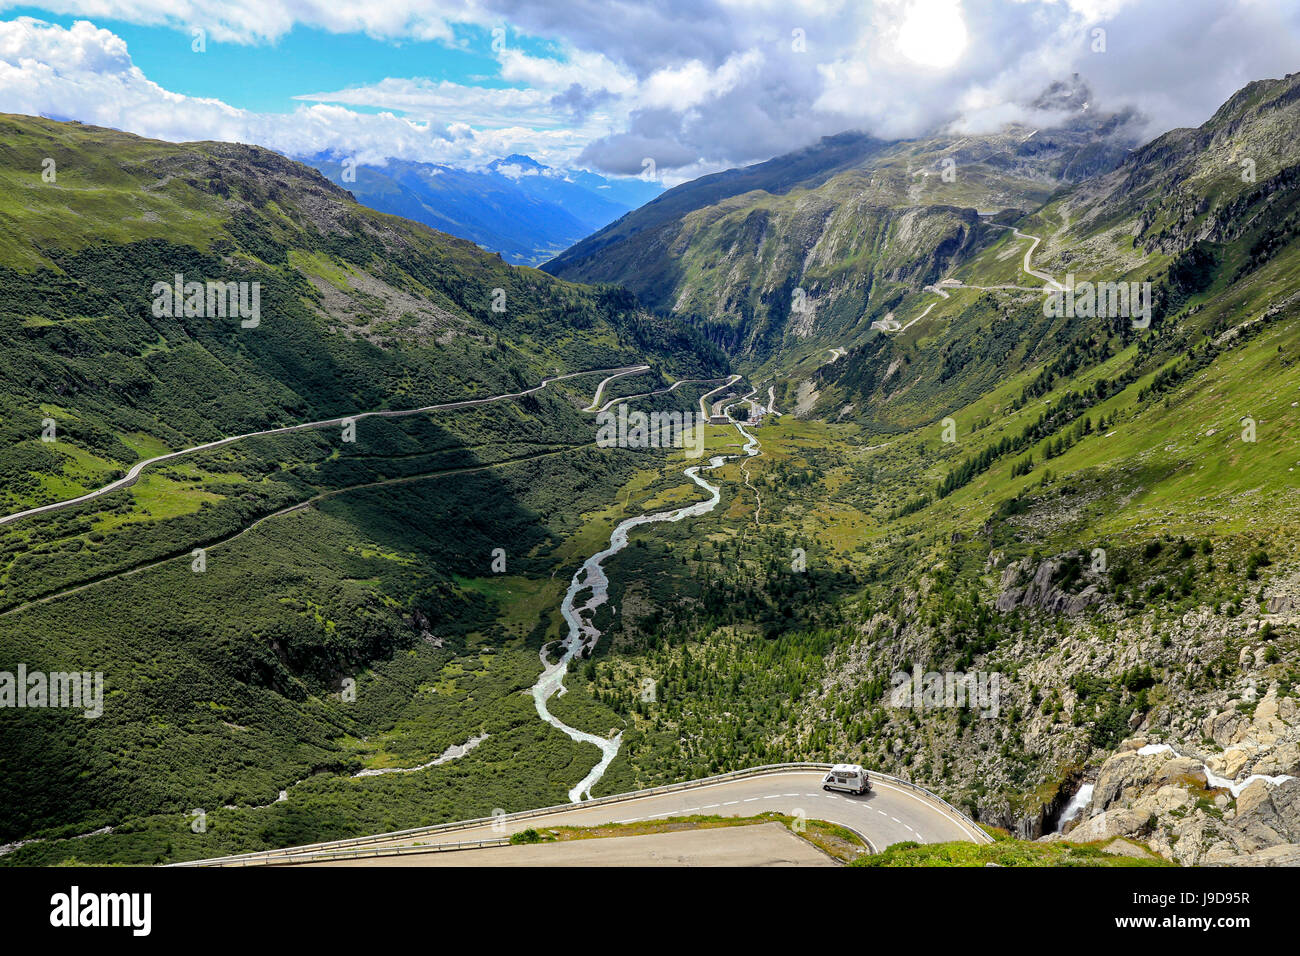 Gletsch with Rhone River, Grimsel and Furka Pass Roads, Canton of Valais, Switzerland, Europe Stock Photo